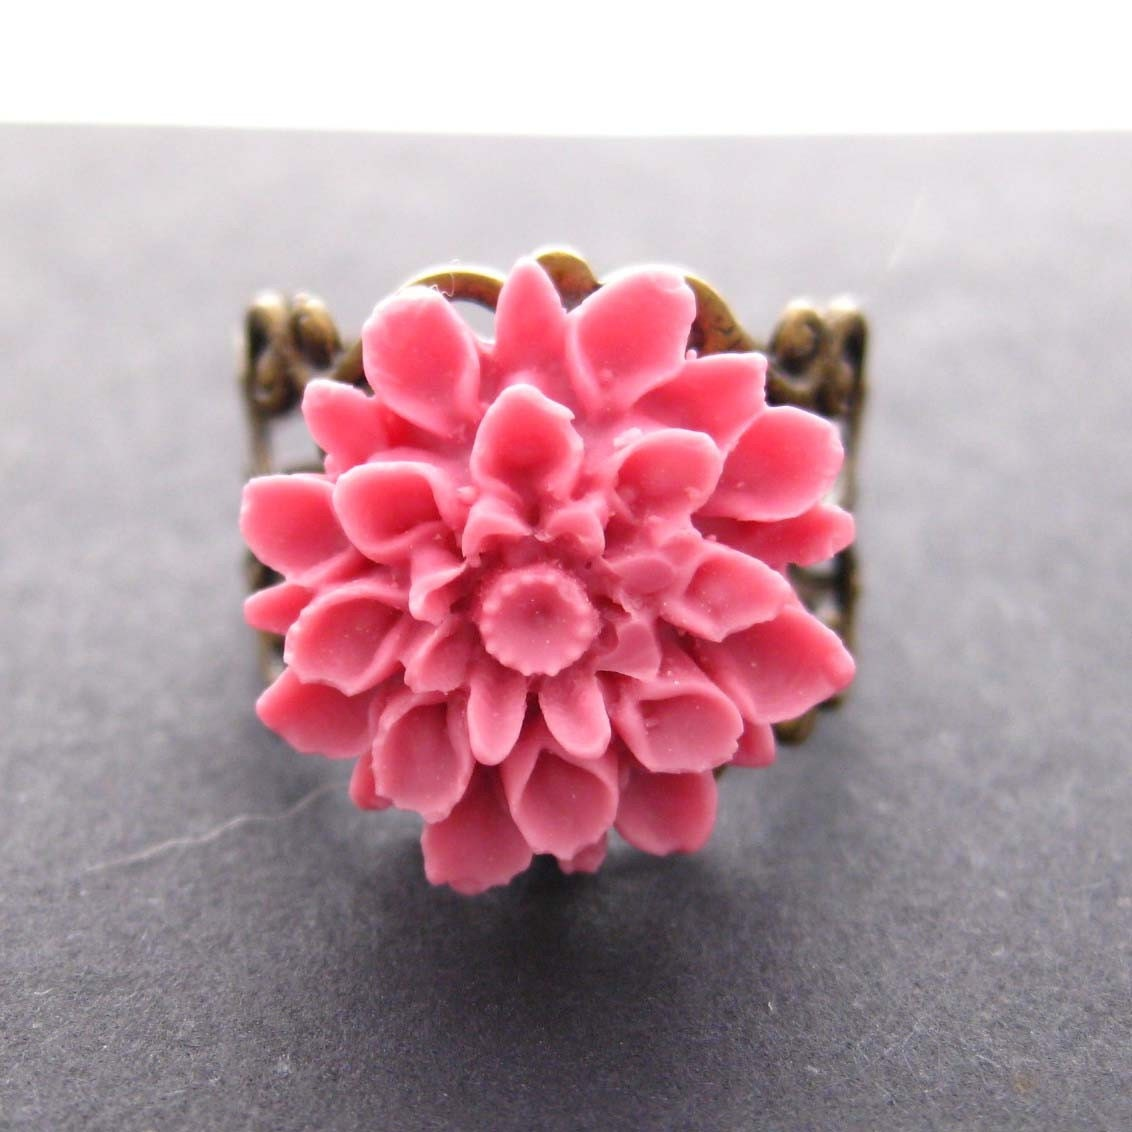 Handmade Bouquet ring with pink flower